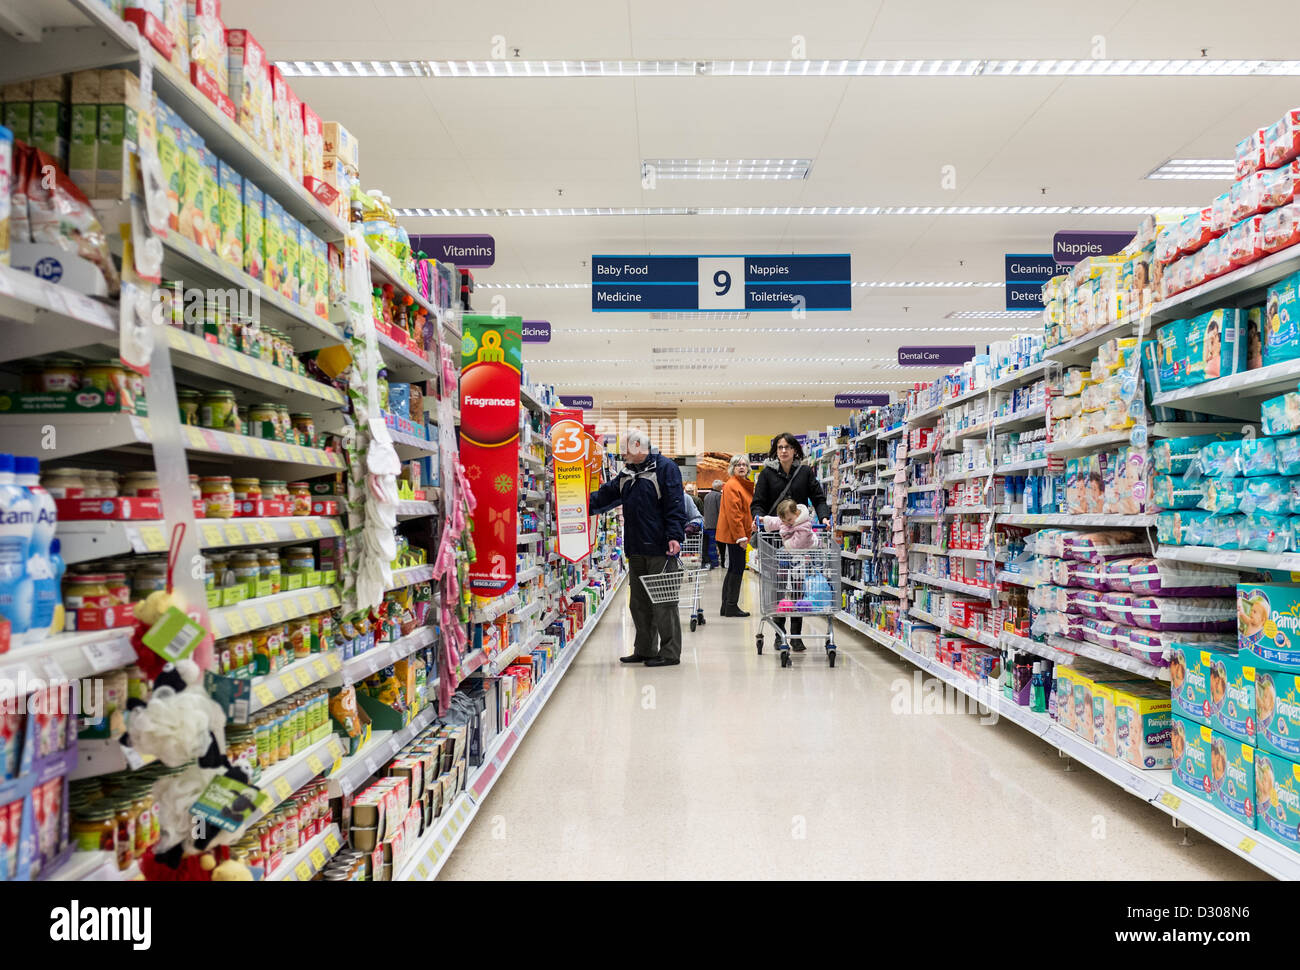 Shoppers in a Tesco supermarket, UK - Stock Image